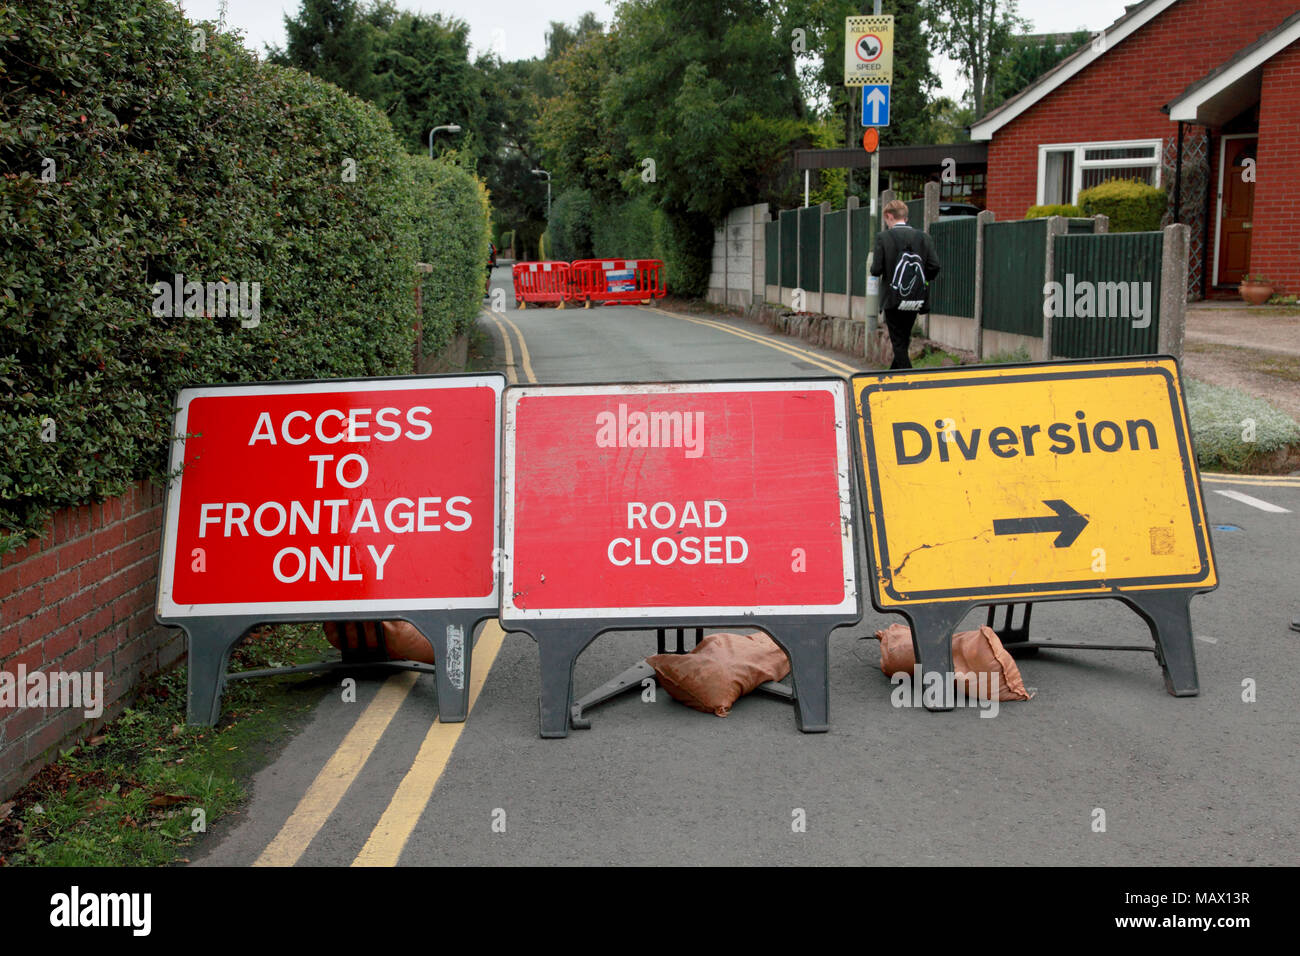 Road closure and diversion signs because of work being done by Severn Trent - Stock Image